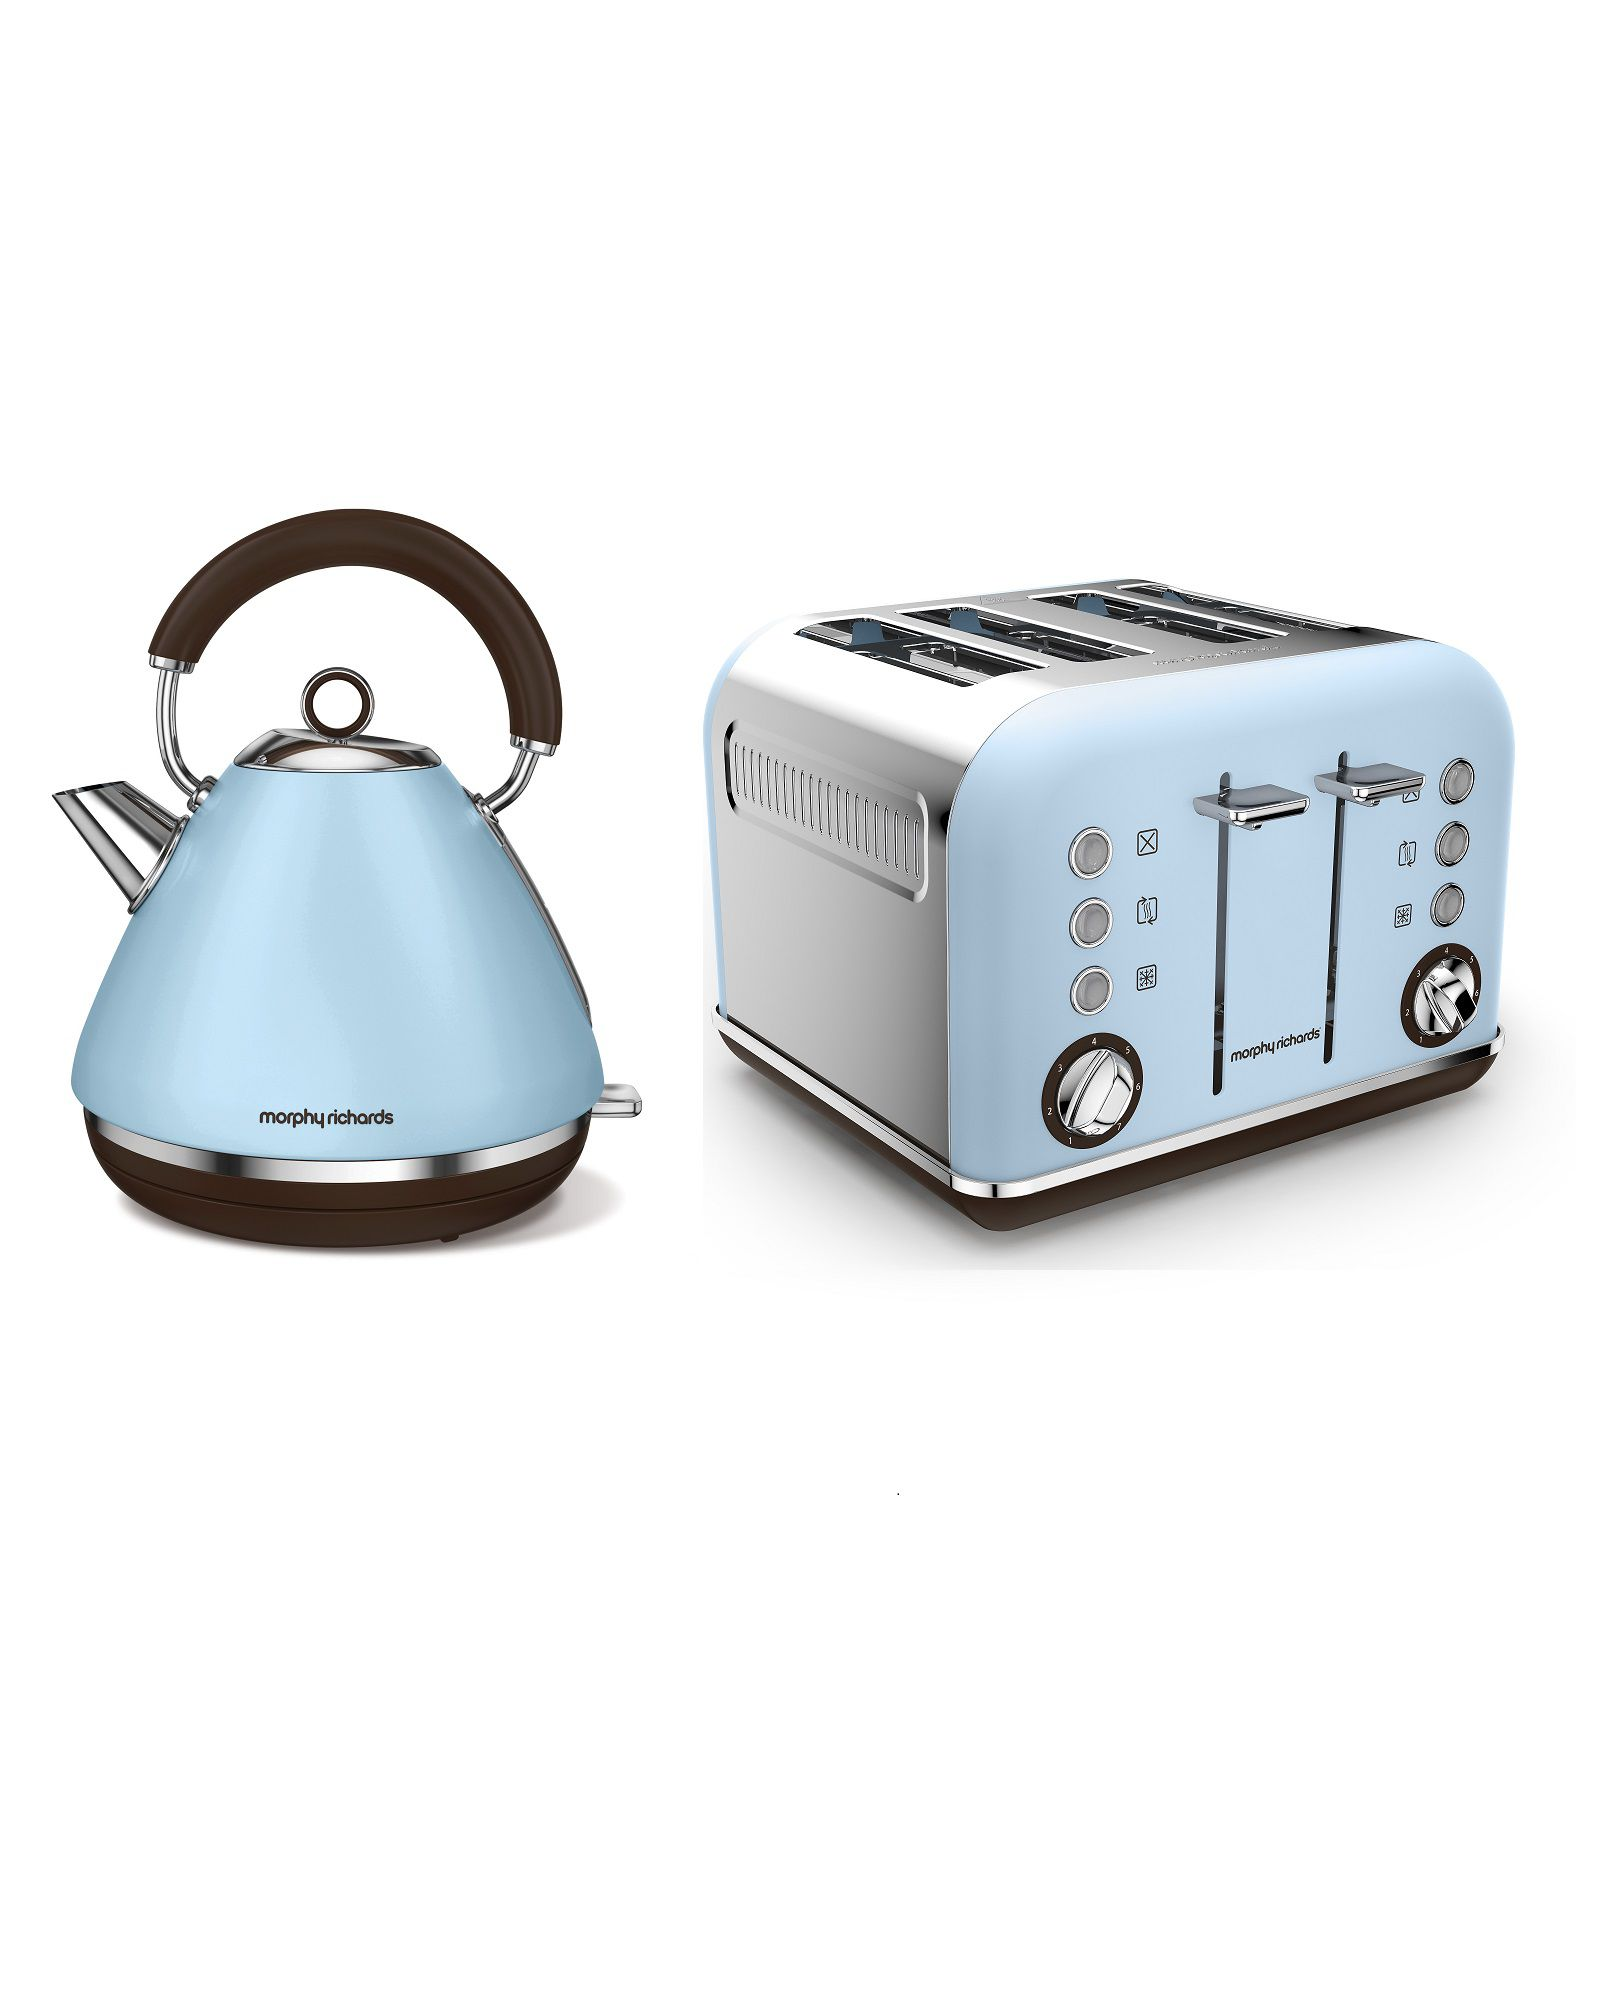 Uncategorized Morphy Richards Kitchen Appliances morphy richards kitchen appliances house of fraser accents special edition azure breakfast